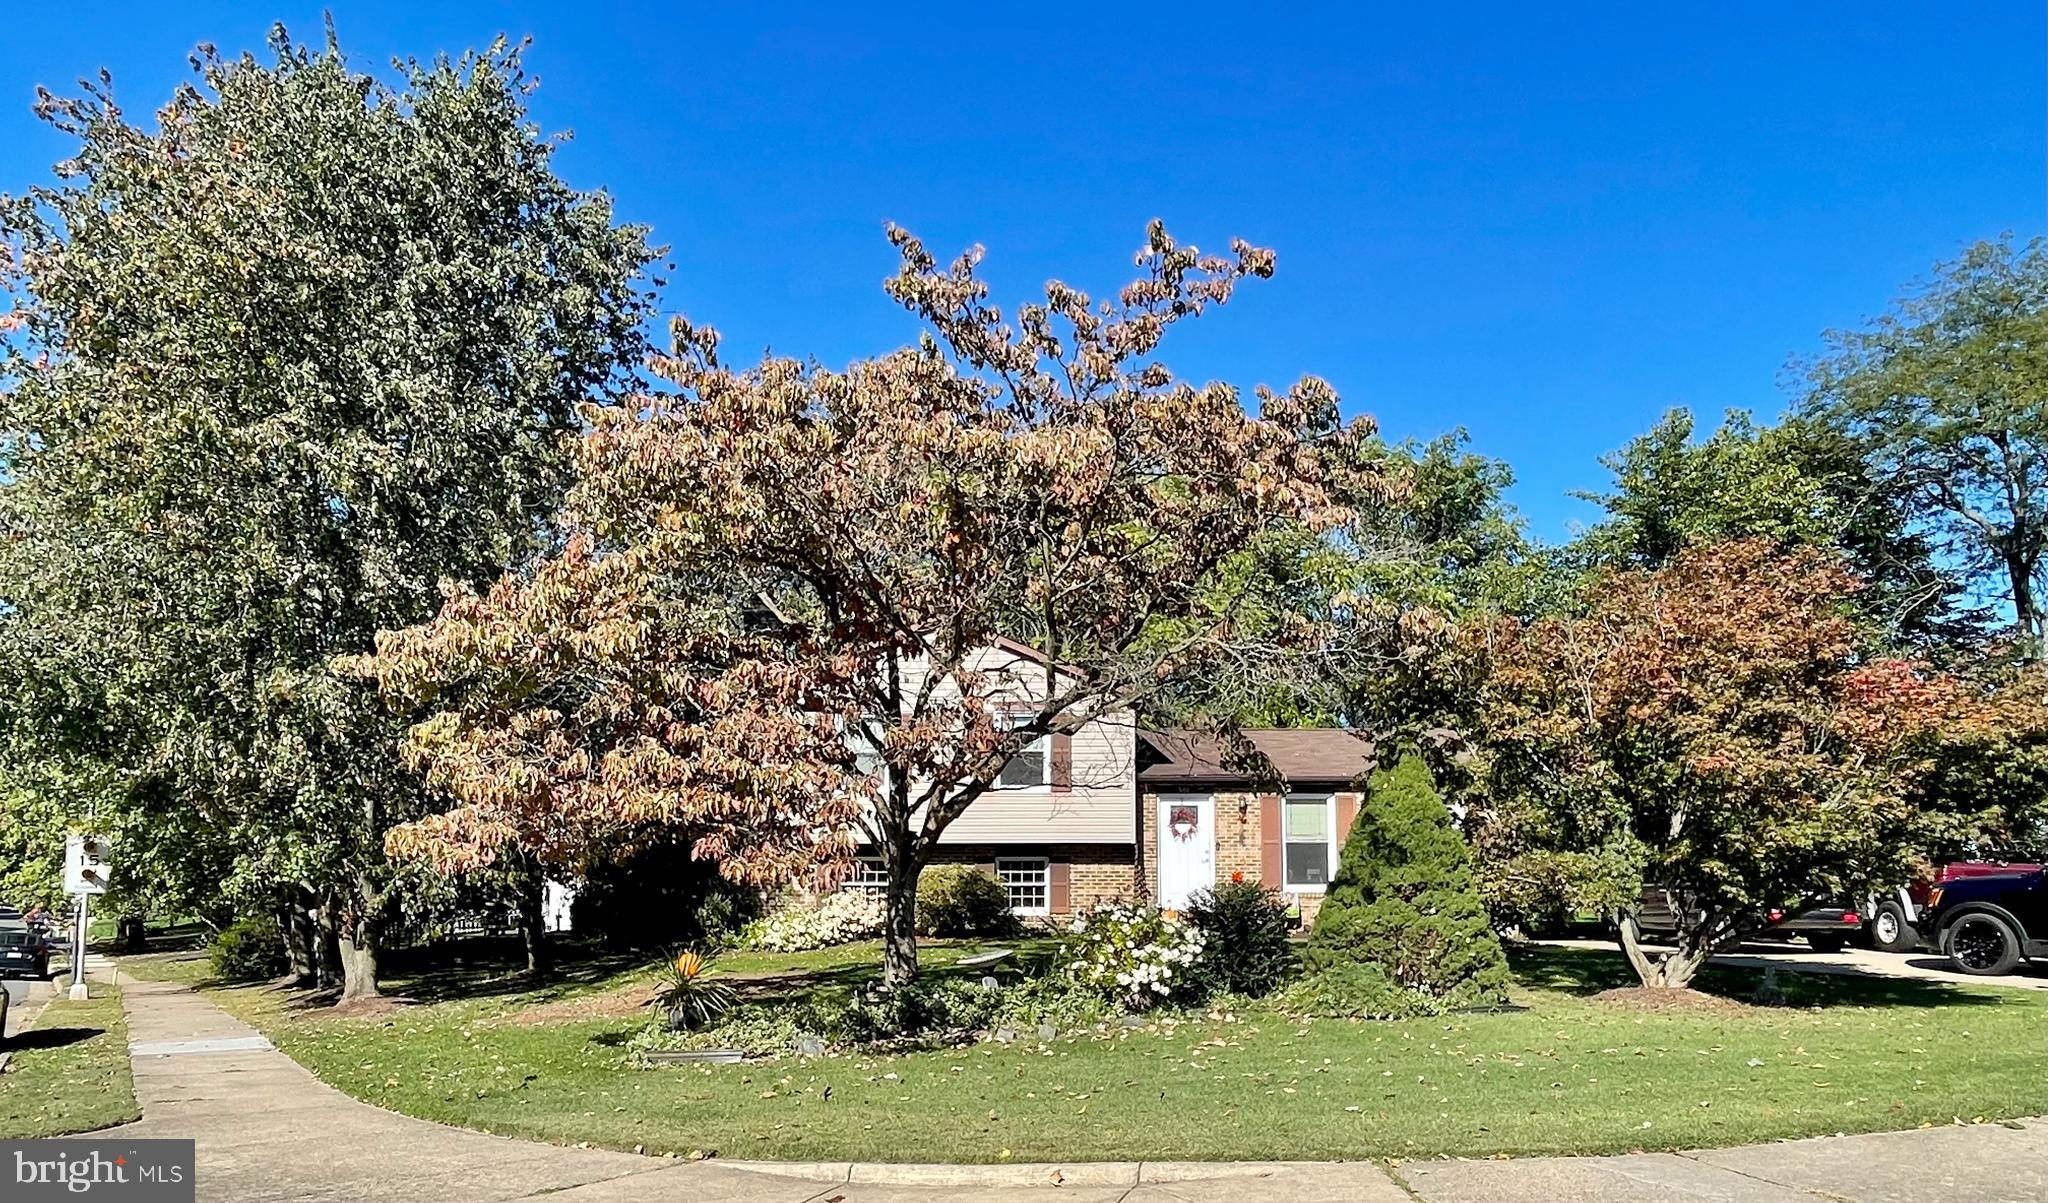 FAMILY COMMUNITY, NEAR SCHOOLS, OULET CENTER, PARKS AND OLD TOWN, EXTRA LARGE HOME WITH 4 LEVELS 4 B